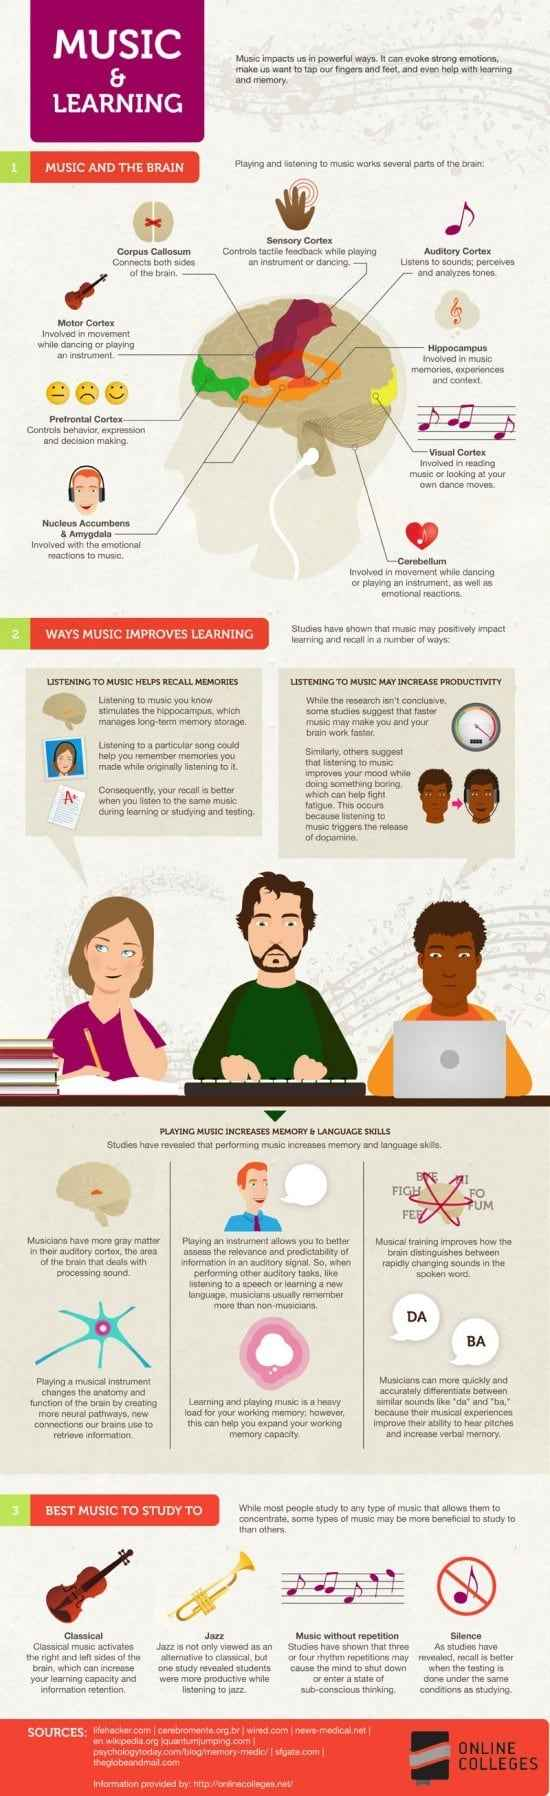 Music's Effect on Learning [Infographic] | Daily Infographic